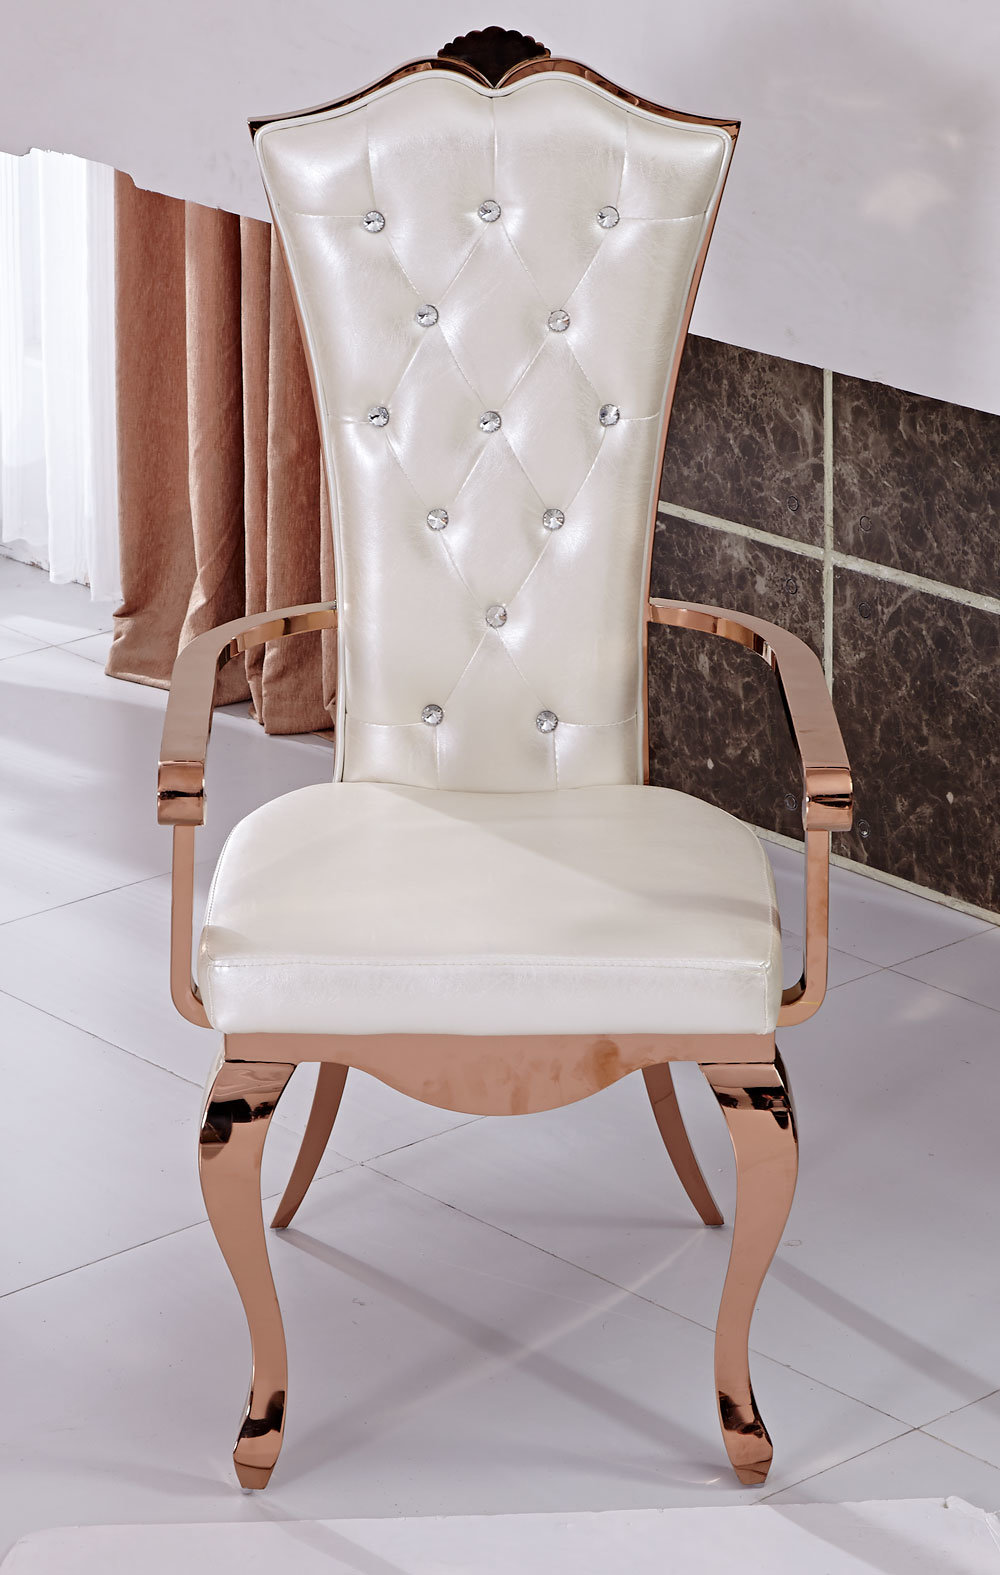 New Design Rose Golden Stainless Steel Dining Chair with Armrest